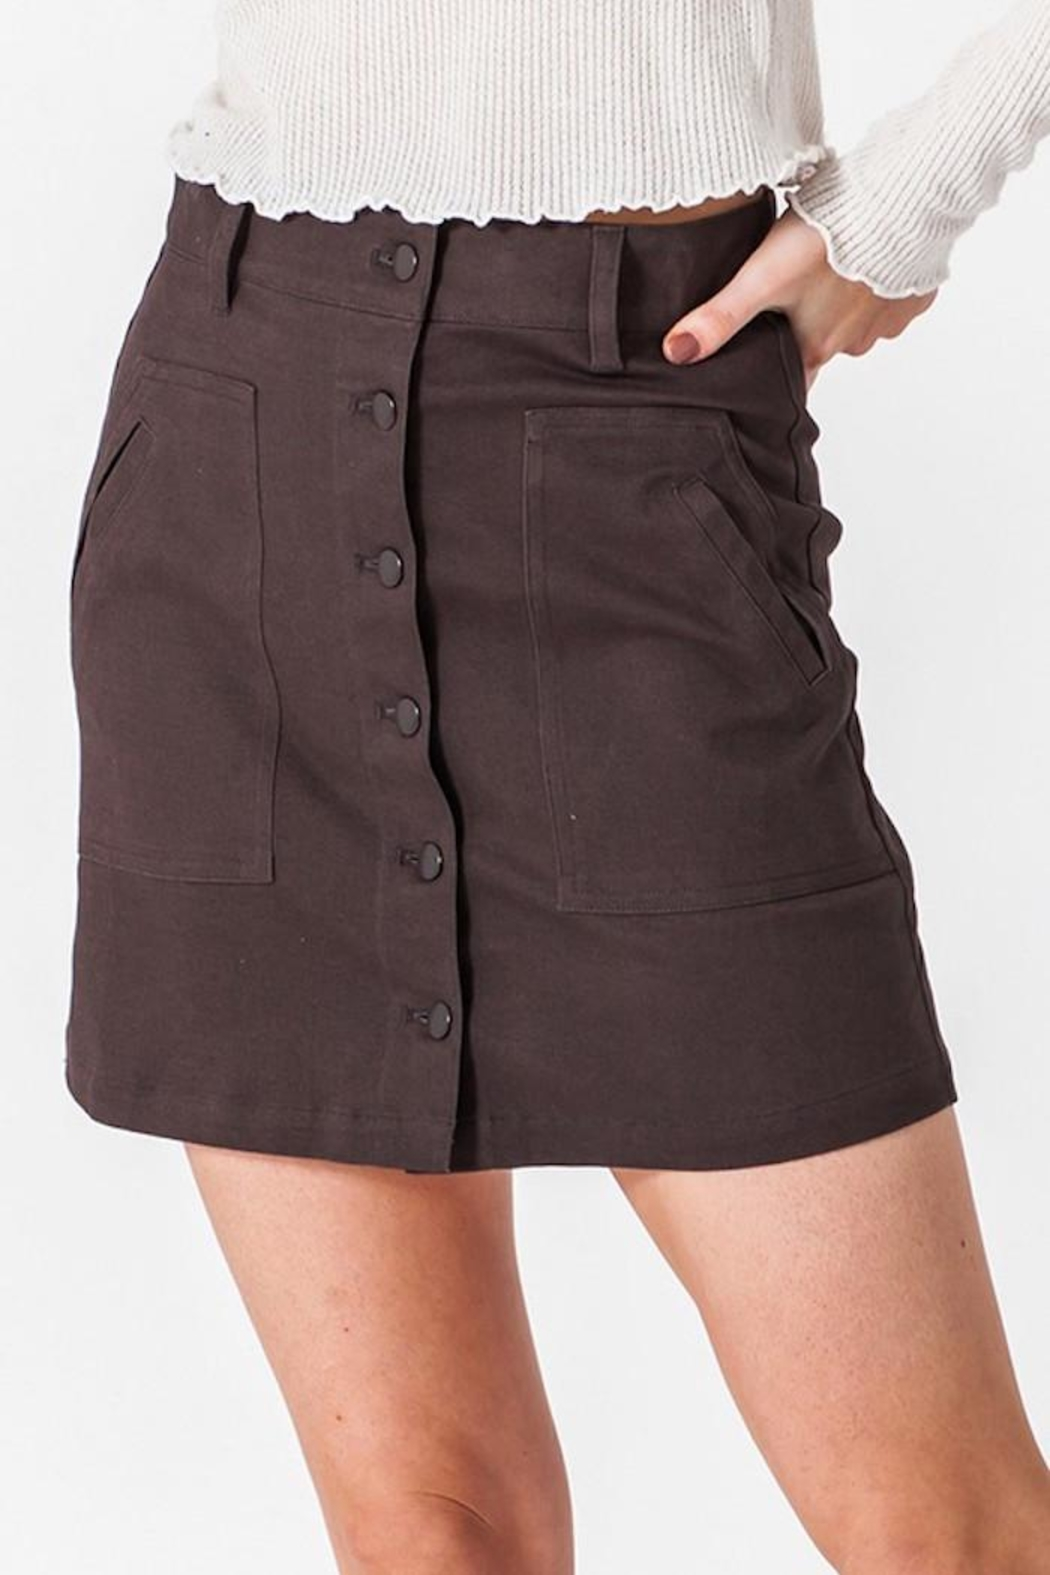 HYFVE Button Up Skirt - Front Full Image